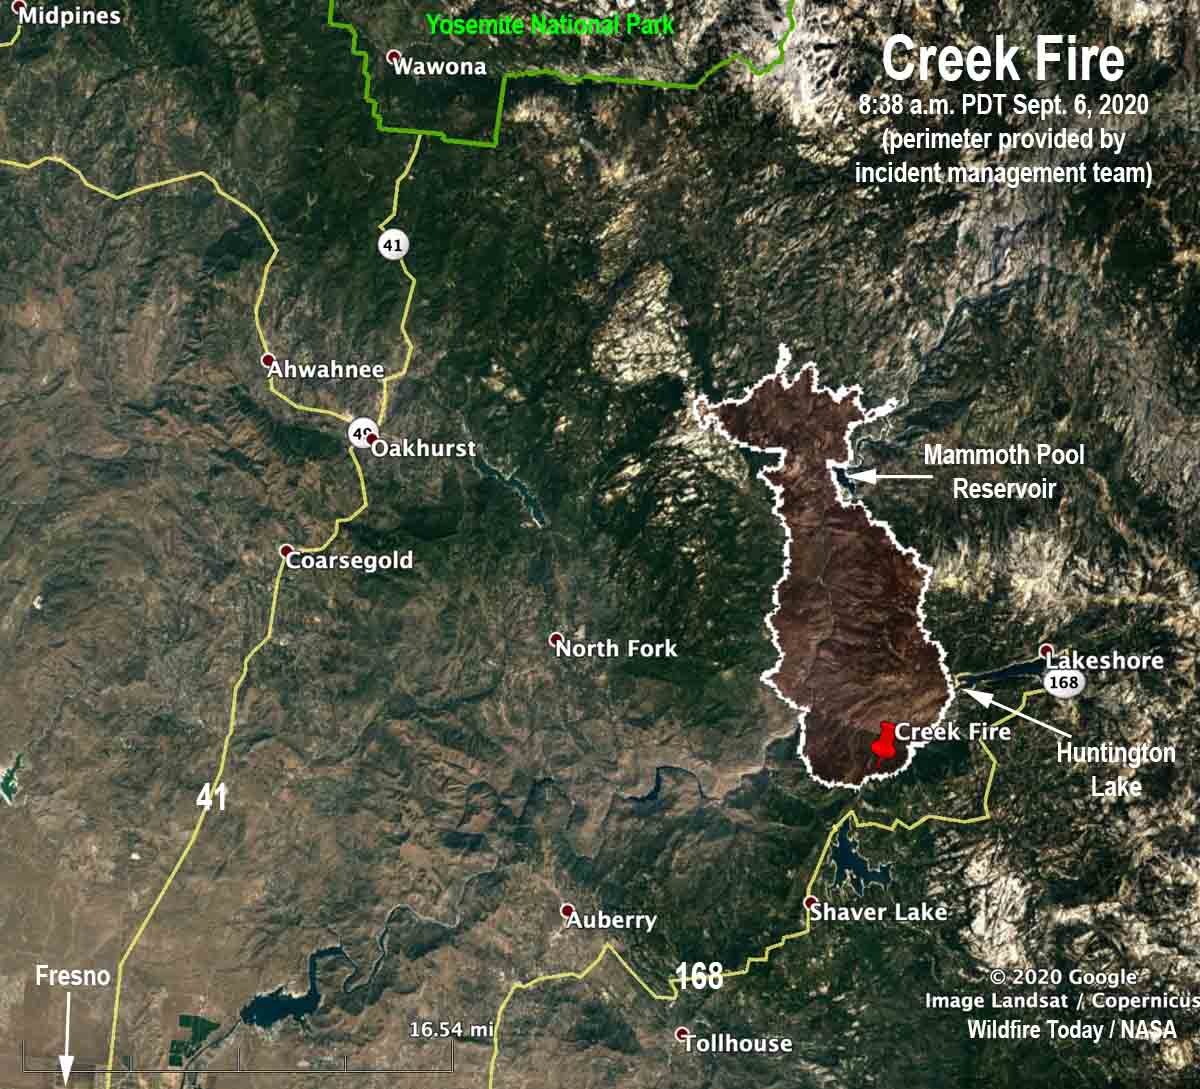 Map of the Creek Fire